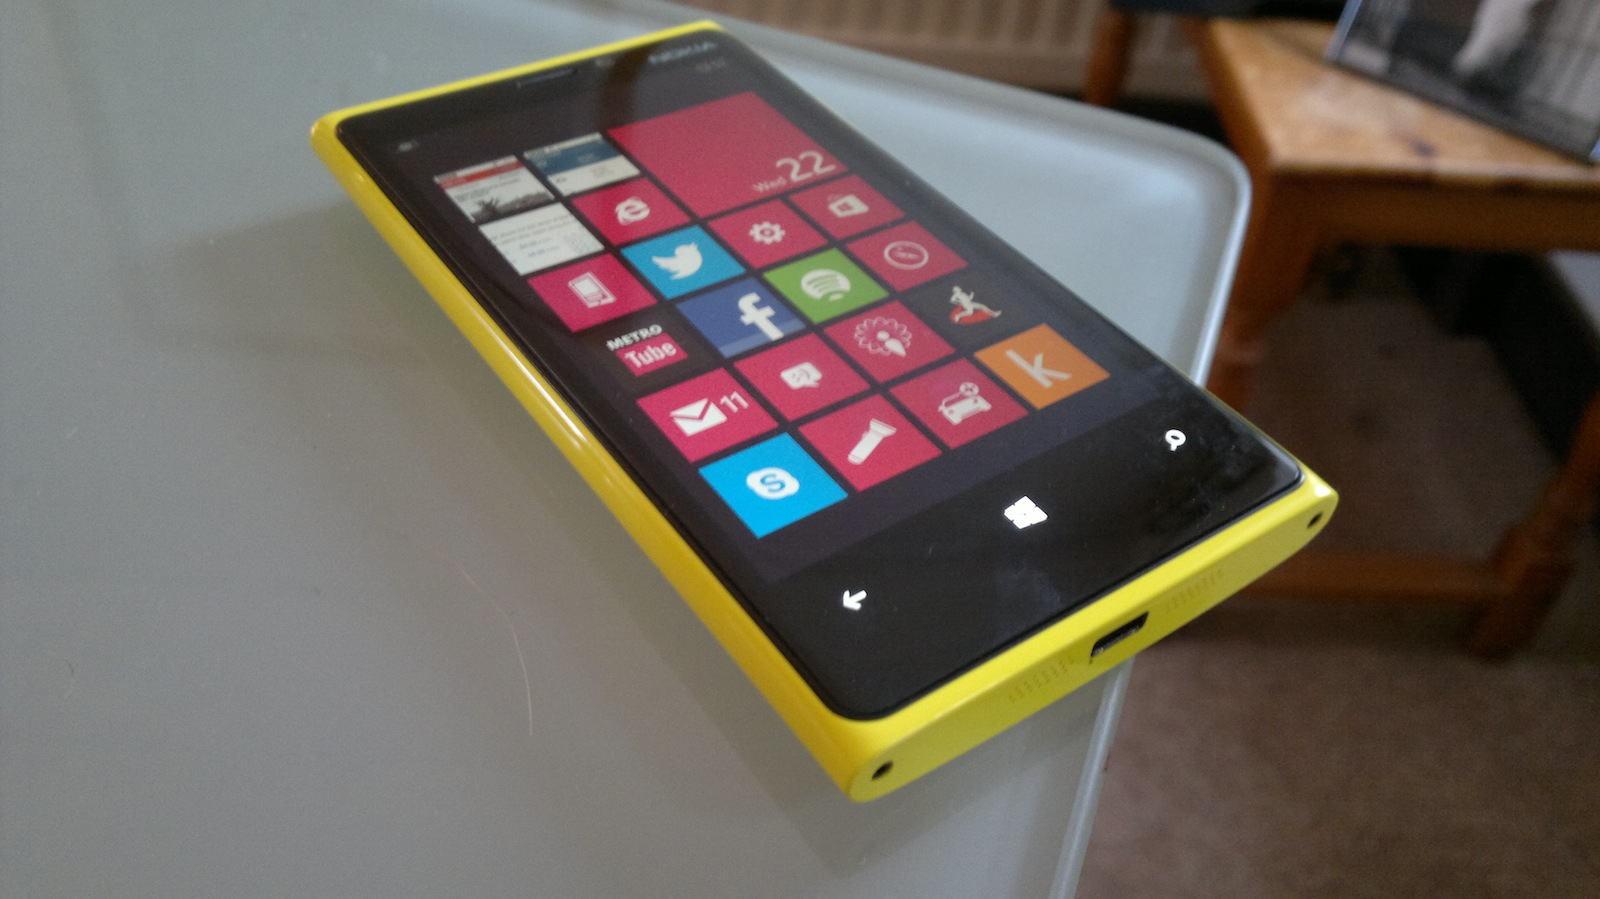 Nokia Lumia 920 on desk